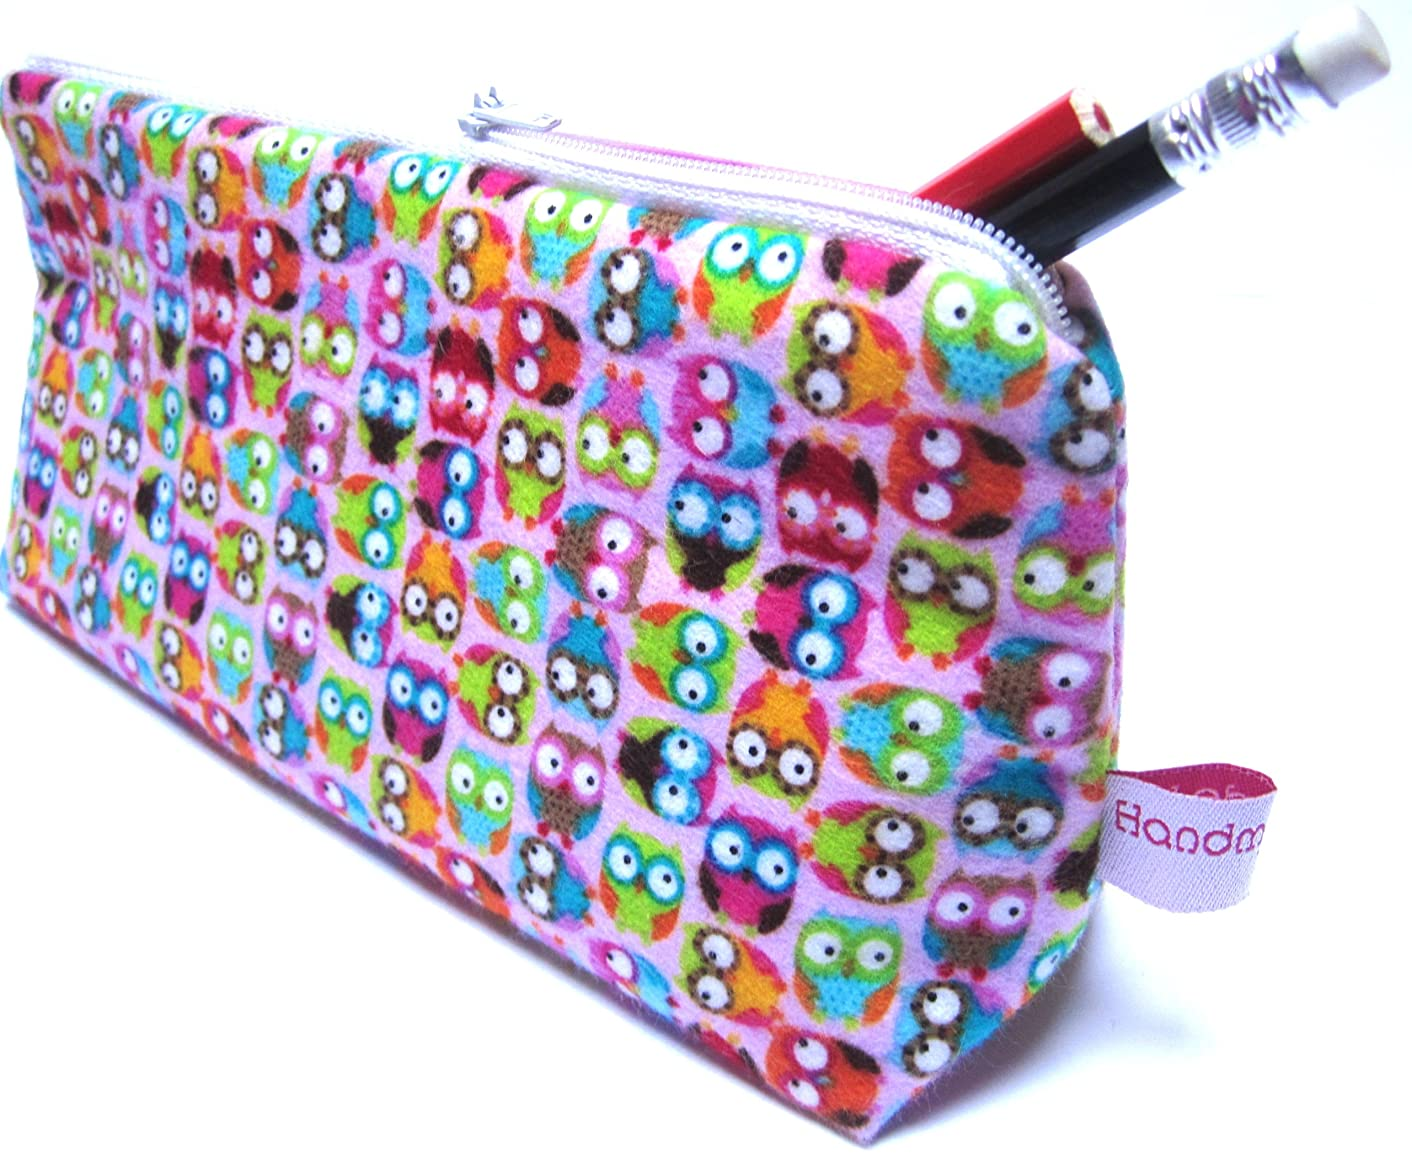 TryPinky Feather Pencil Case with Small Owls Design Pink